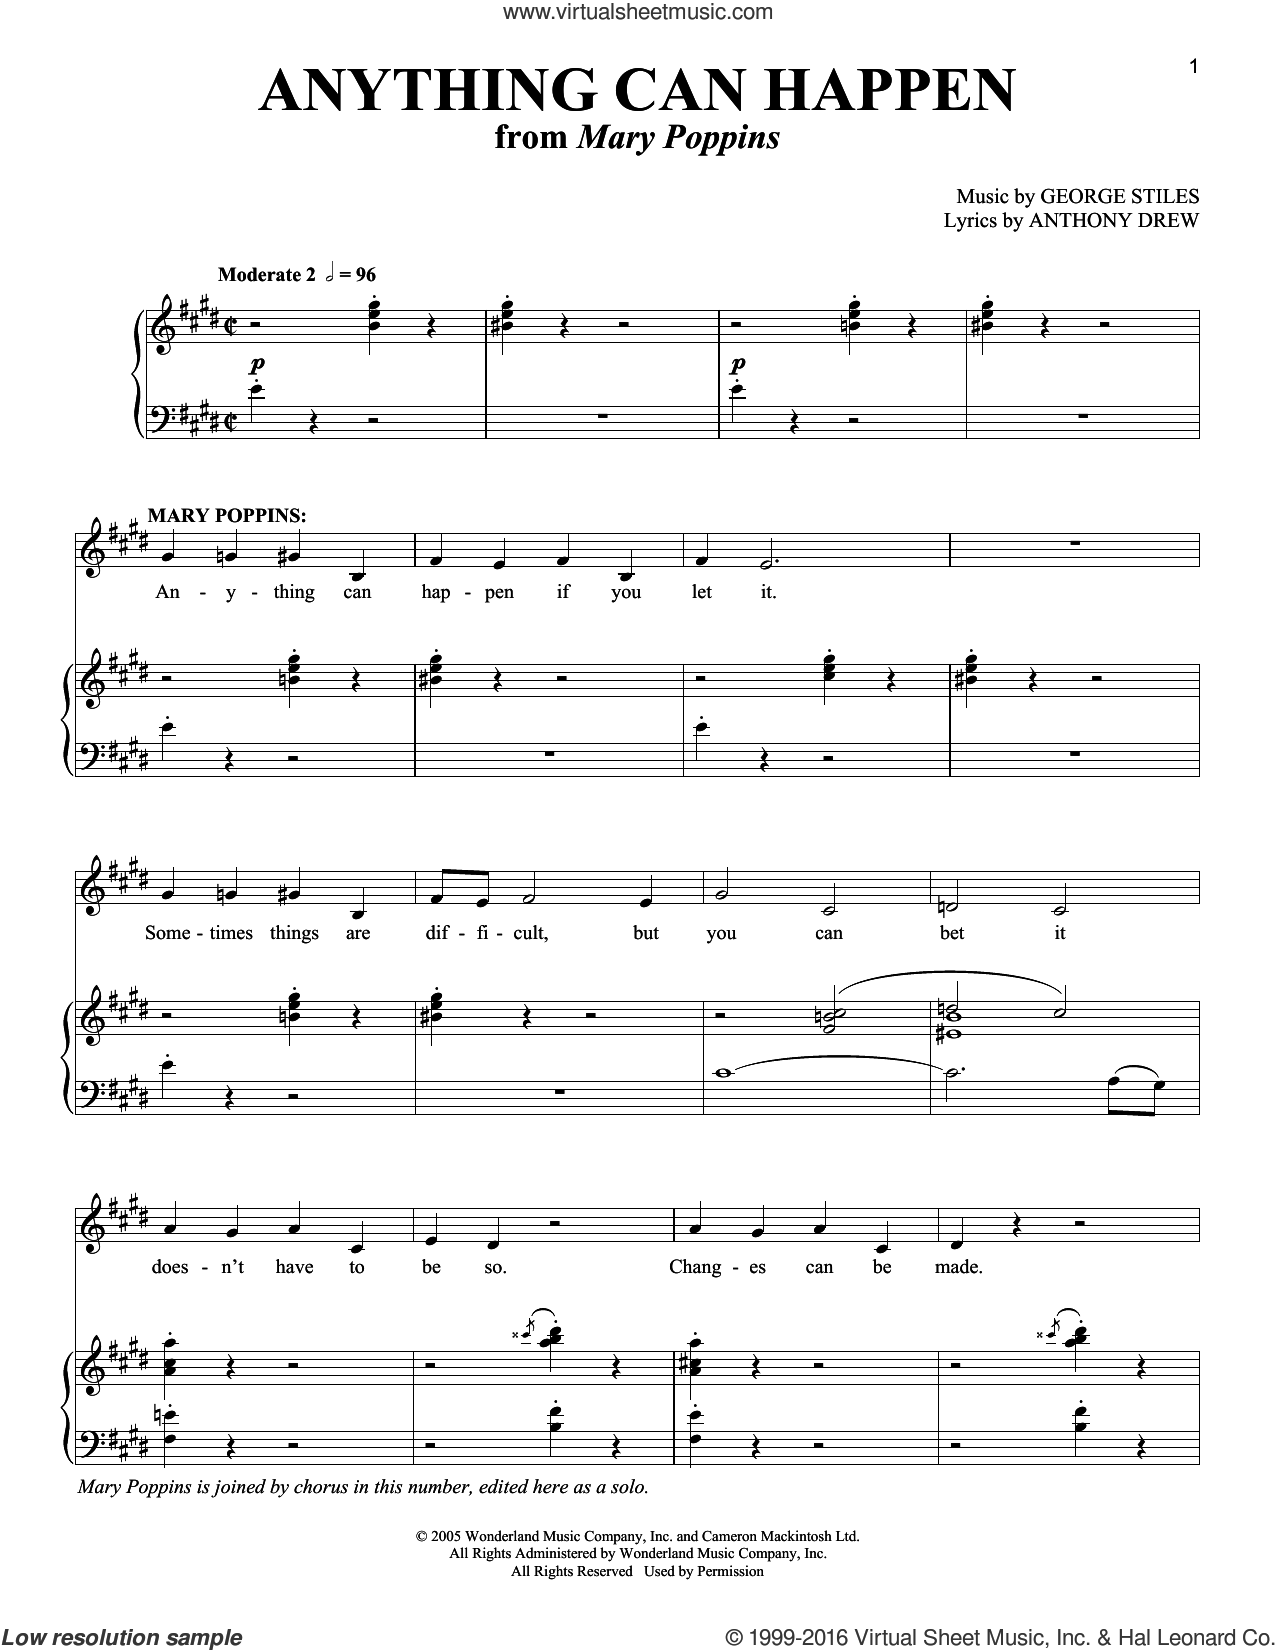 Anything Can Happen sheet music for voice and piano by George Stiles